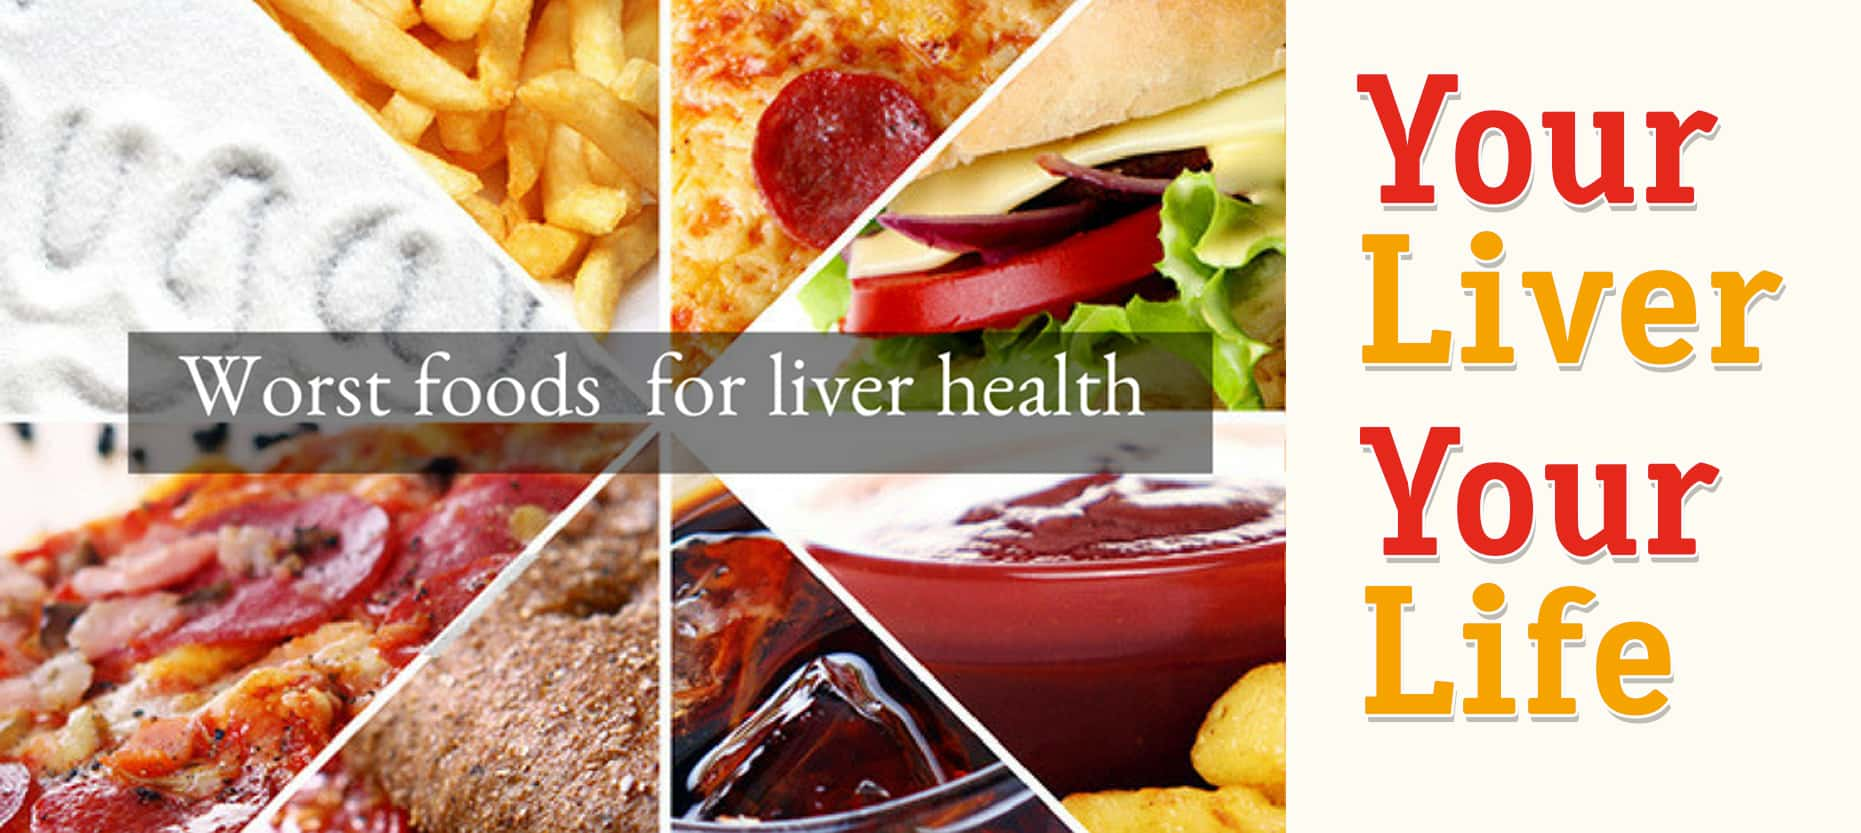 Your Liver-Your Life: Worst Foods to avoid for your Liver